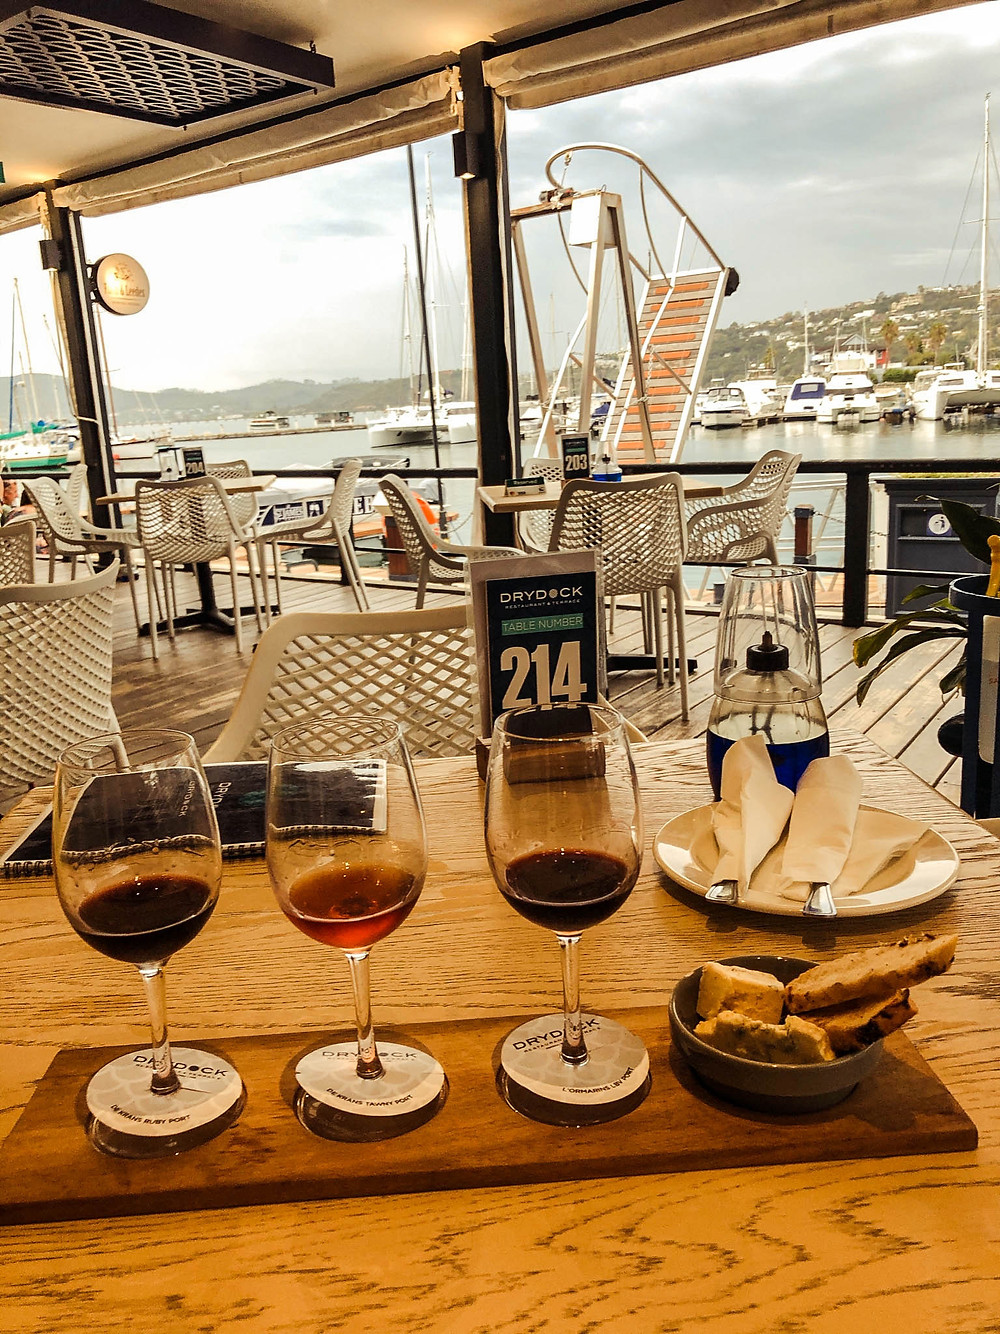 Not quite communion wine, but Knysna's Drydock Restaurant does a great port tasting!